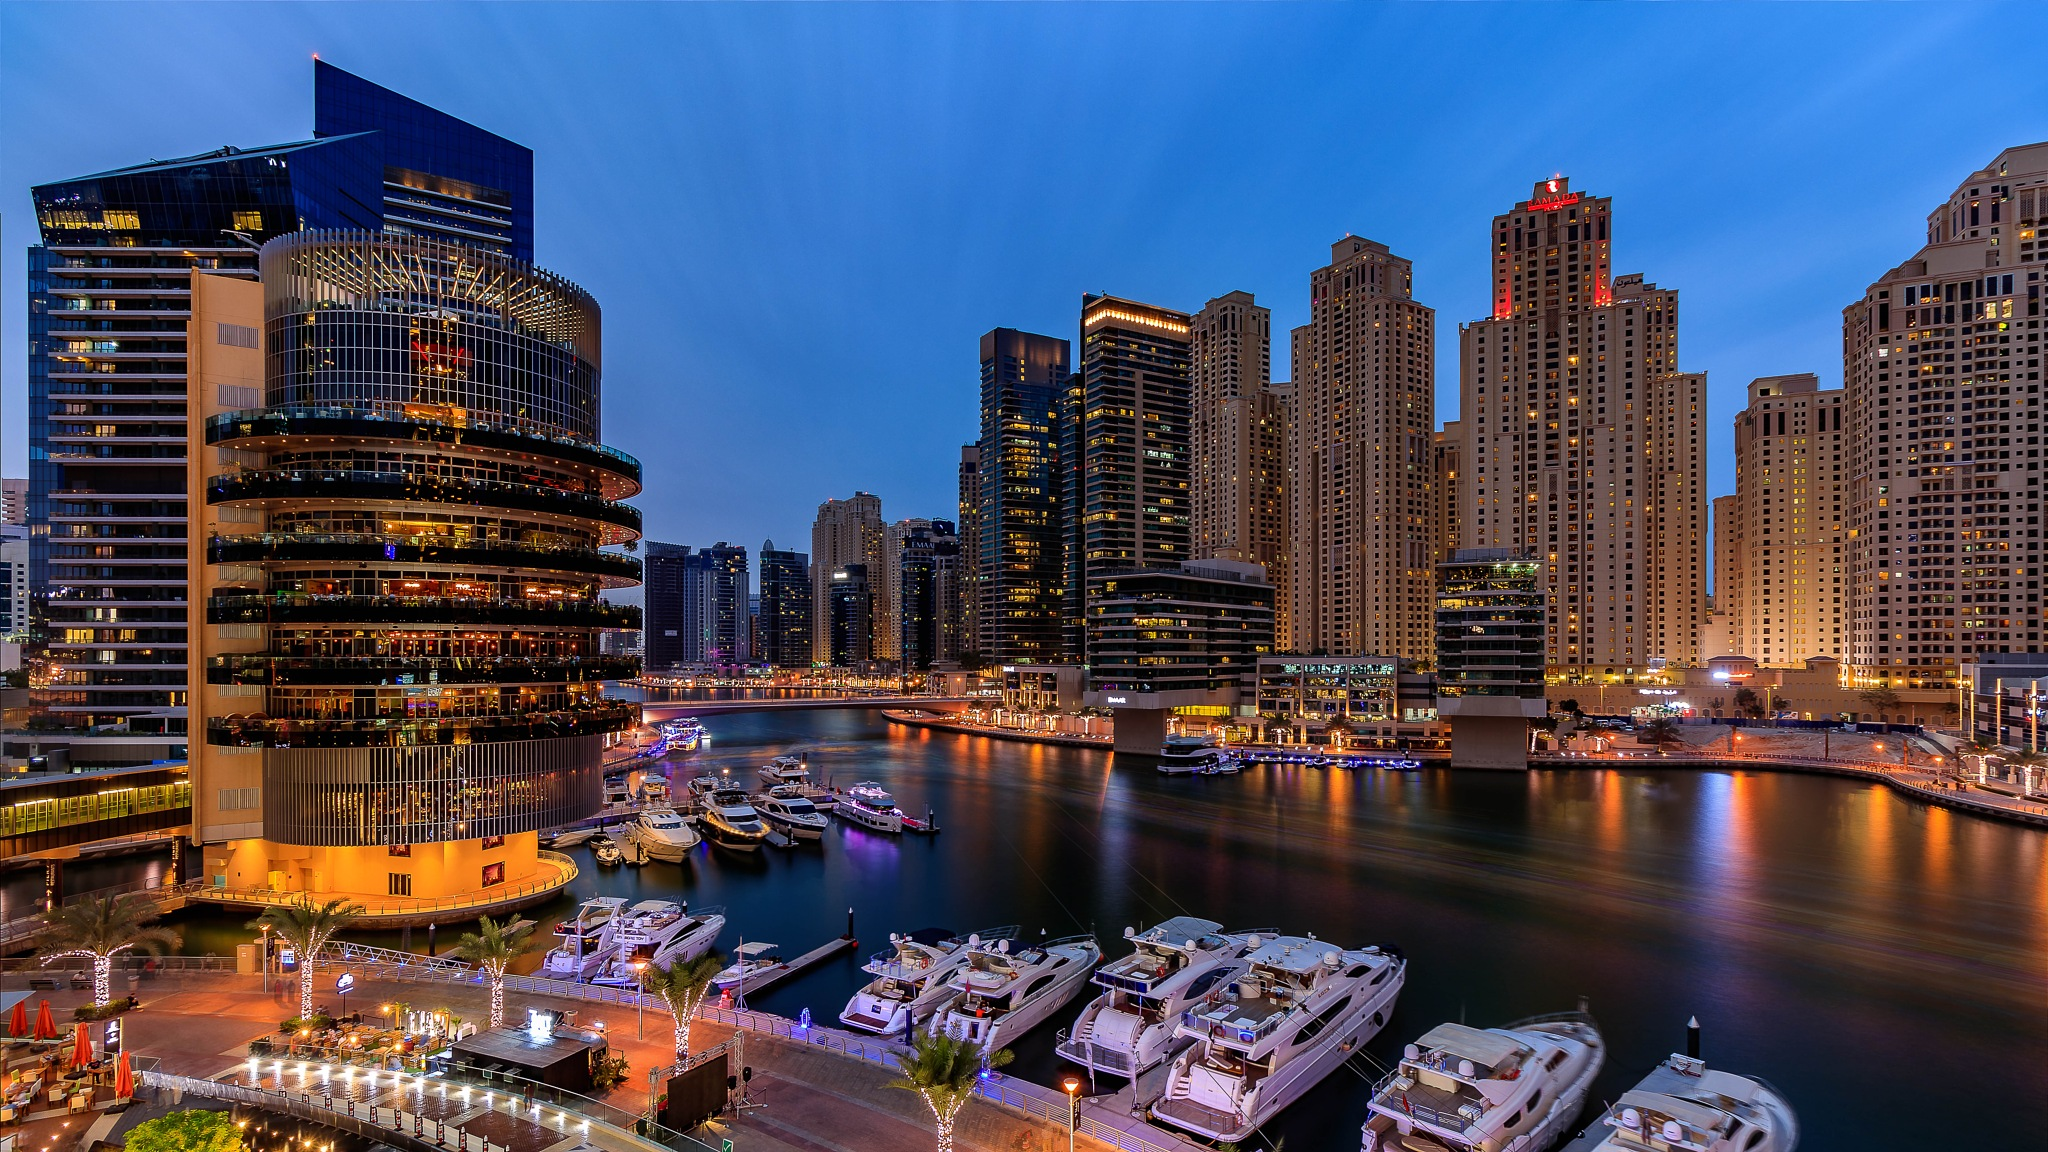 Blue Hour Glory by Mohammed Shamaa